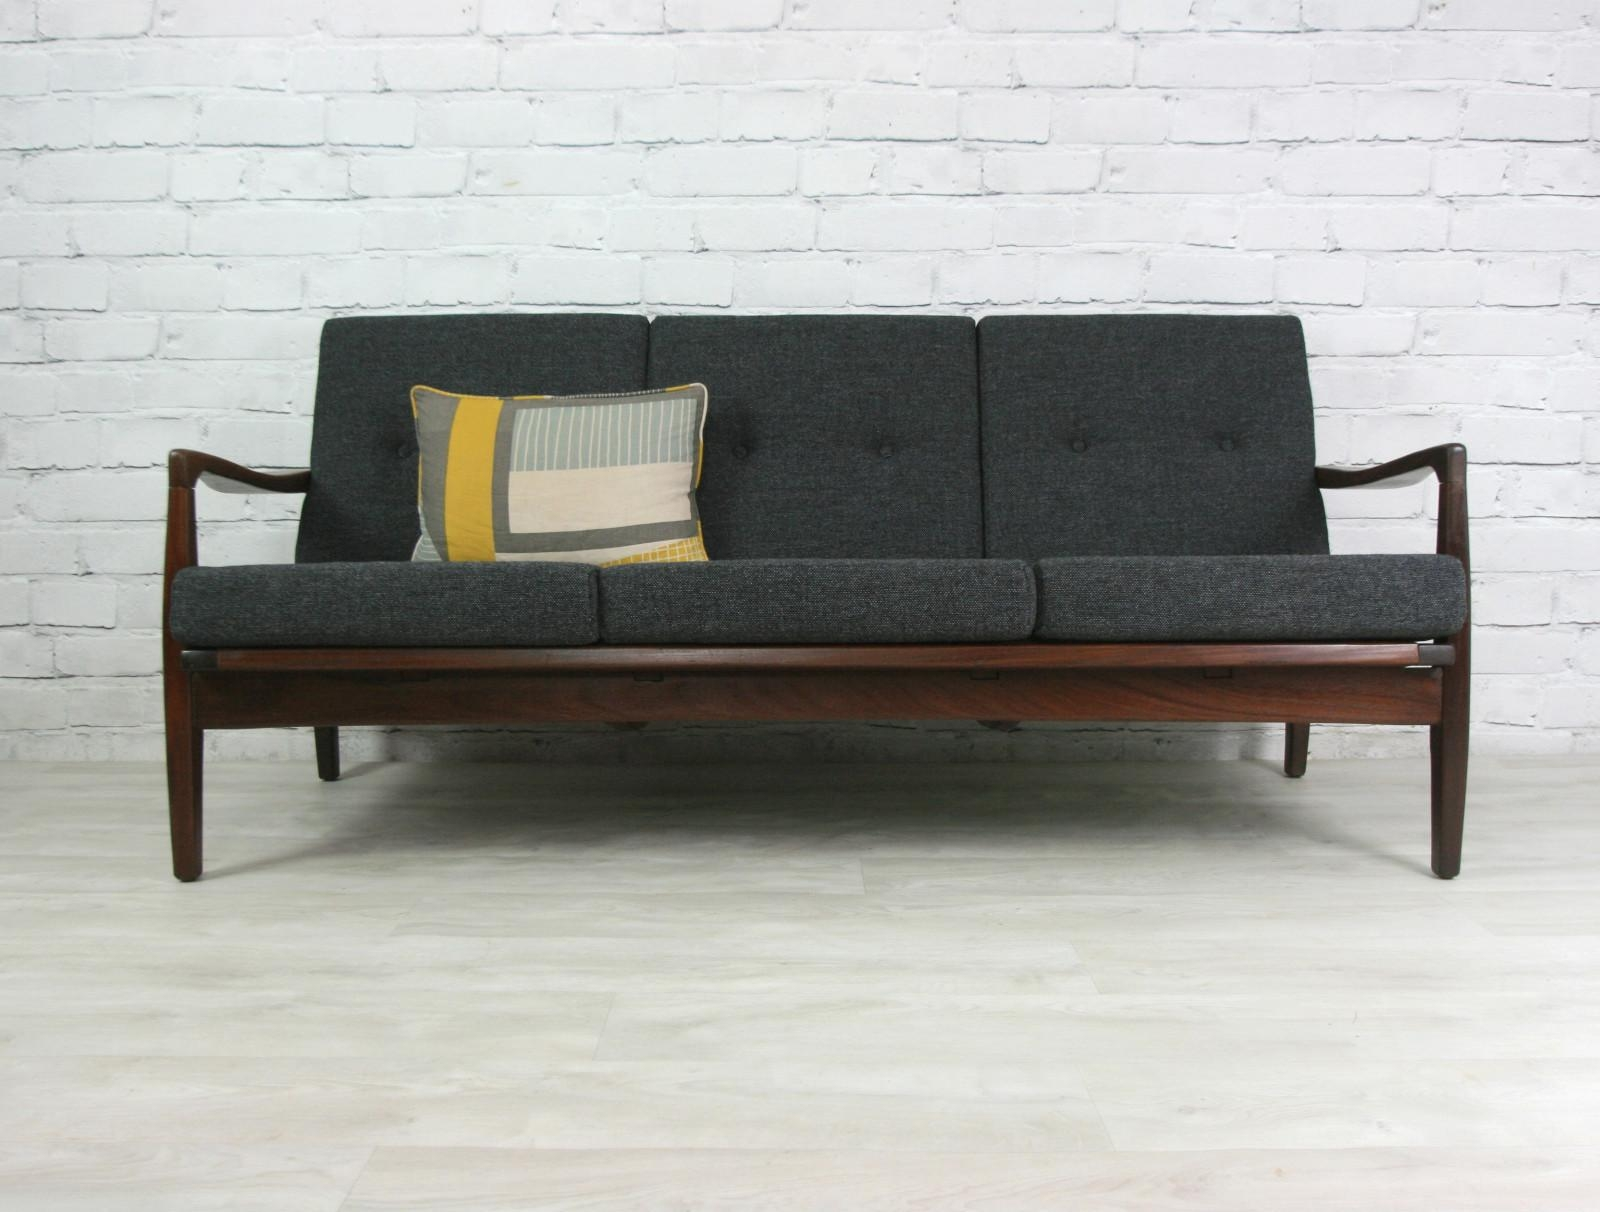 Sofas Center : 45 Remarkable Retro Sofas For Sale Picture Throughout Retro Sofas For Sale (Image 7 of 20)